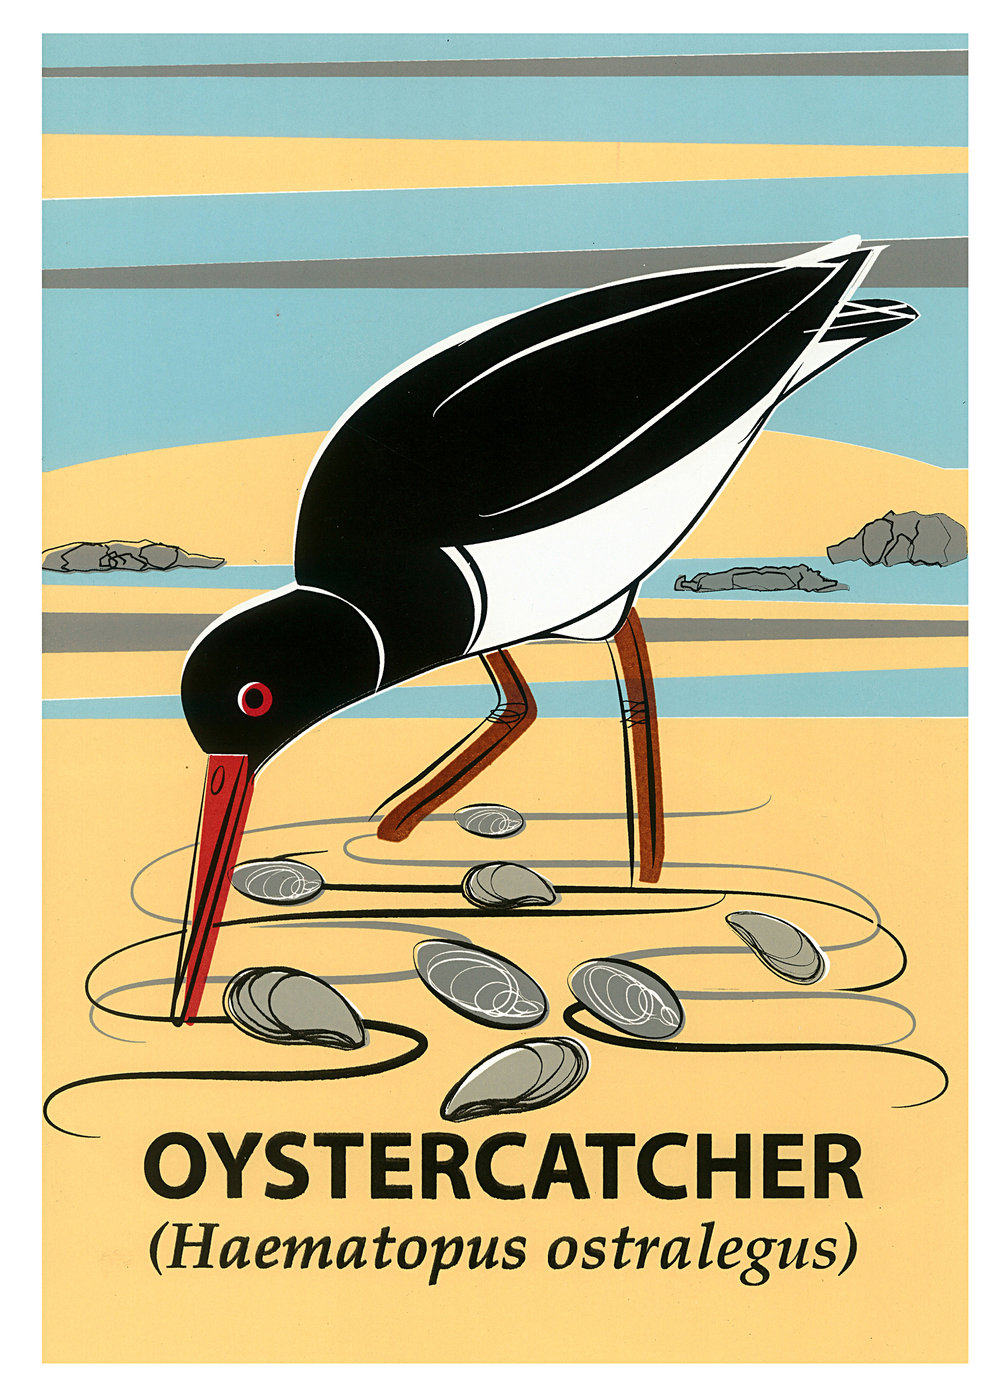 Limited Edition Oystercatcher Screenprint